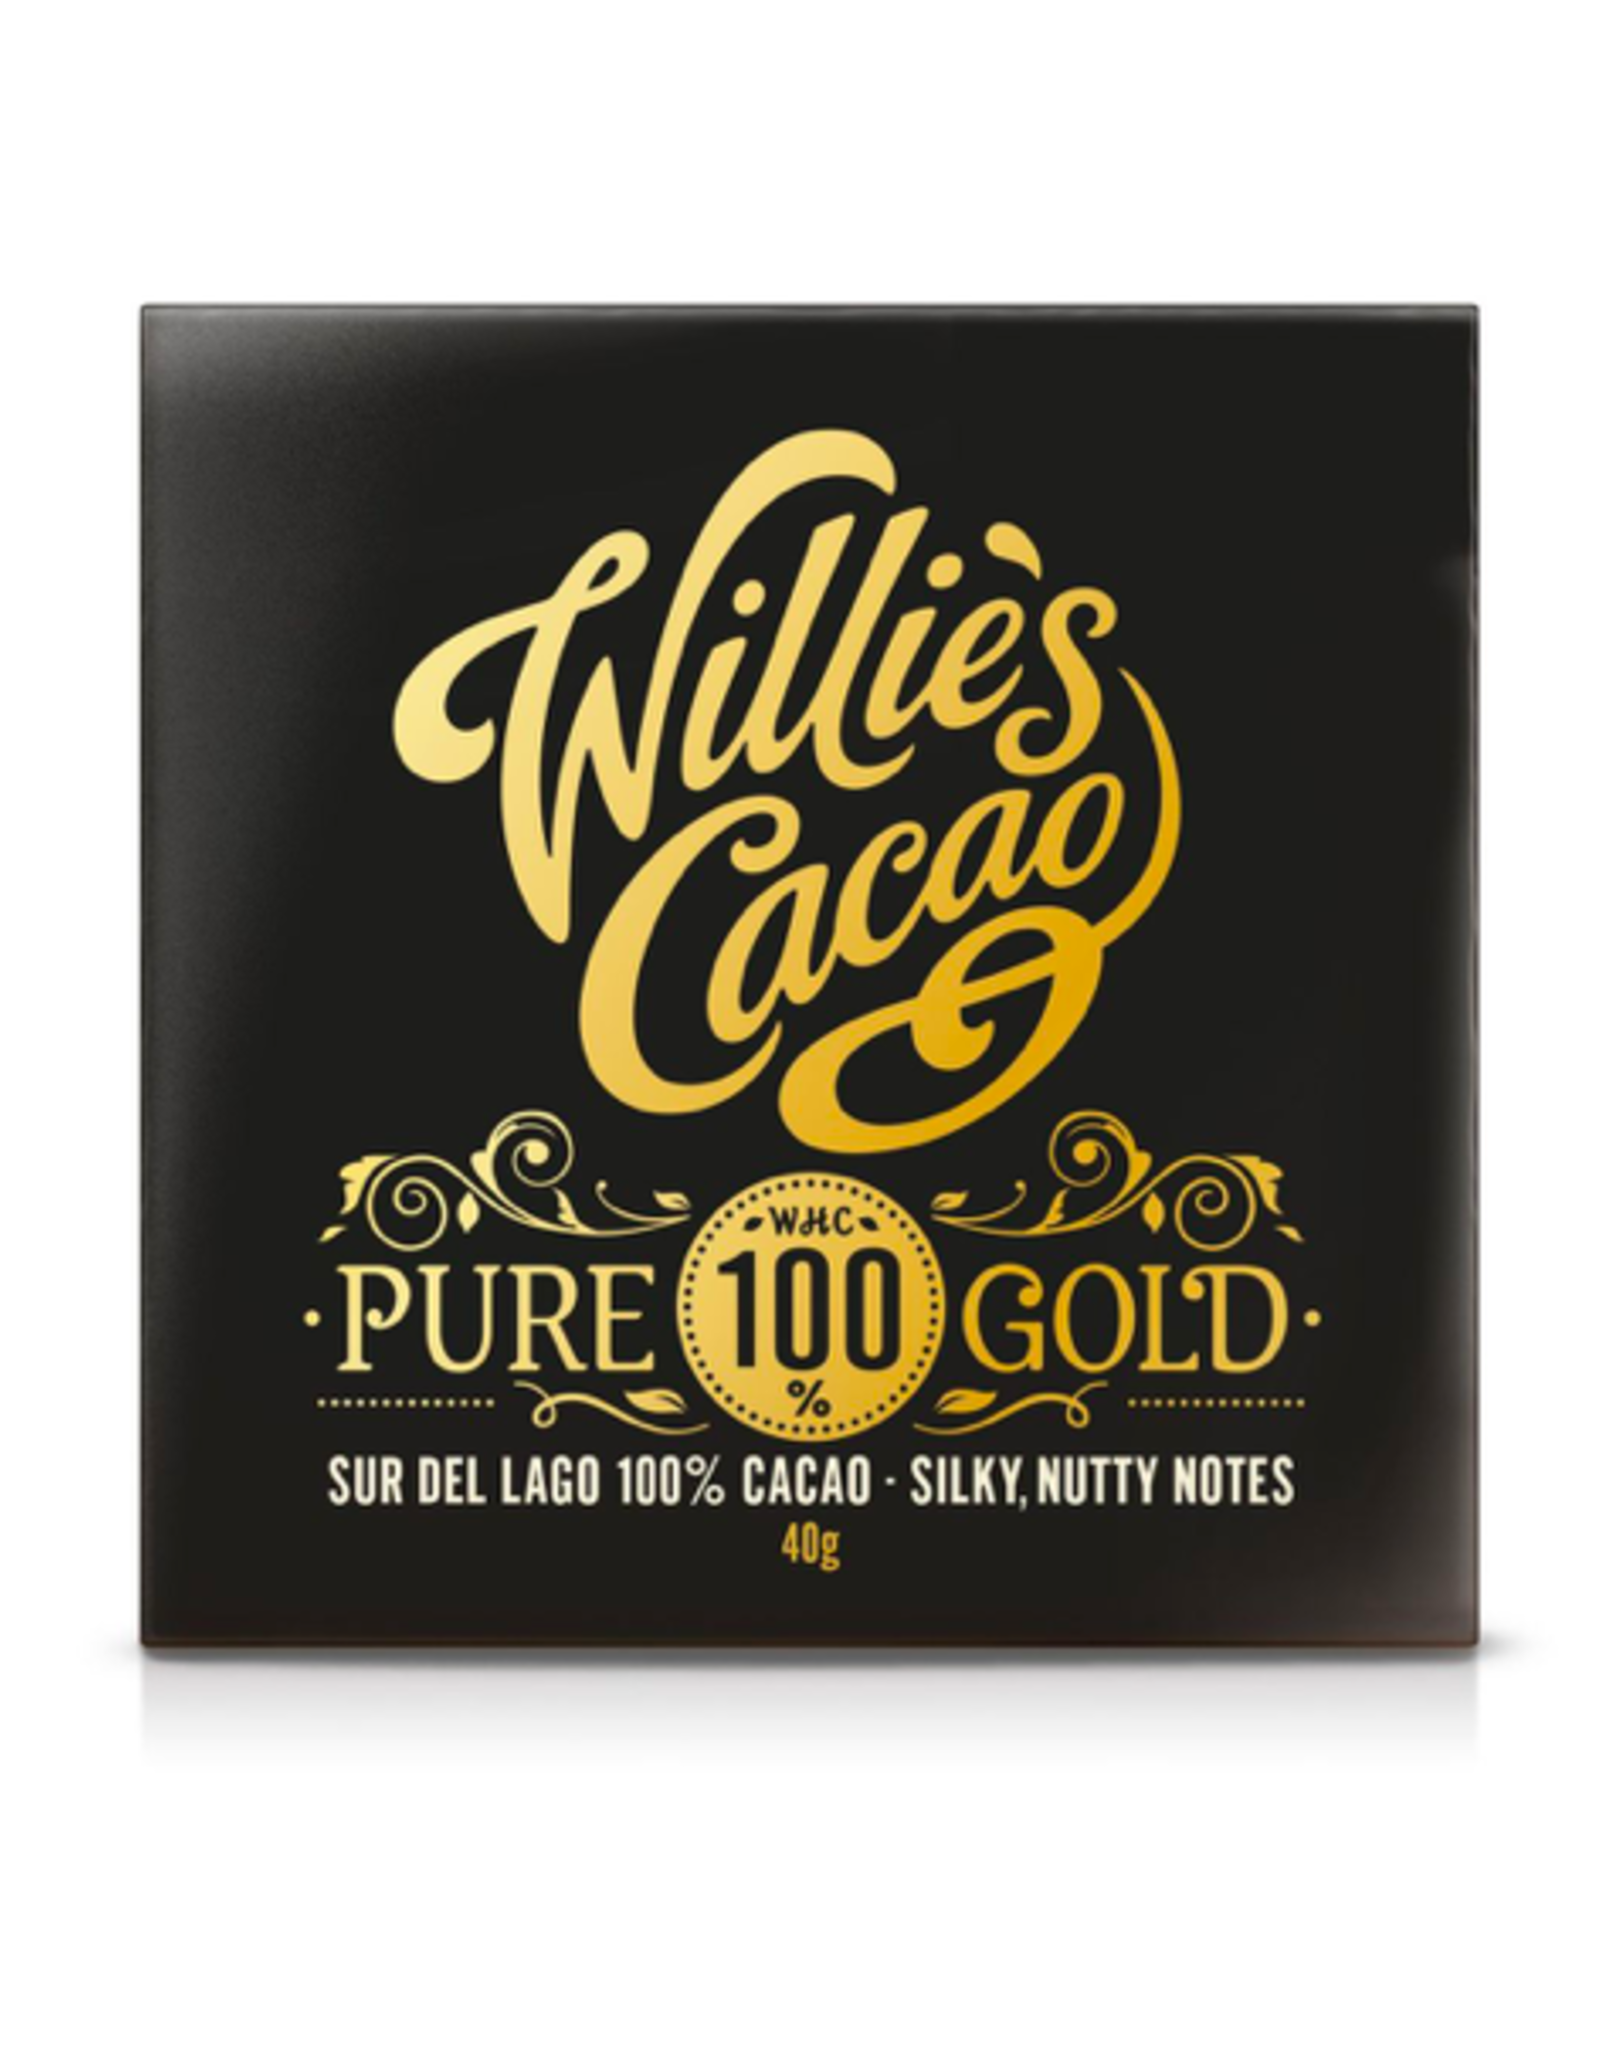 DLE - Willie's Cacao/Pure 100% Gold Bar, 40g